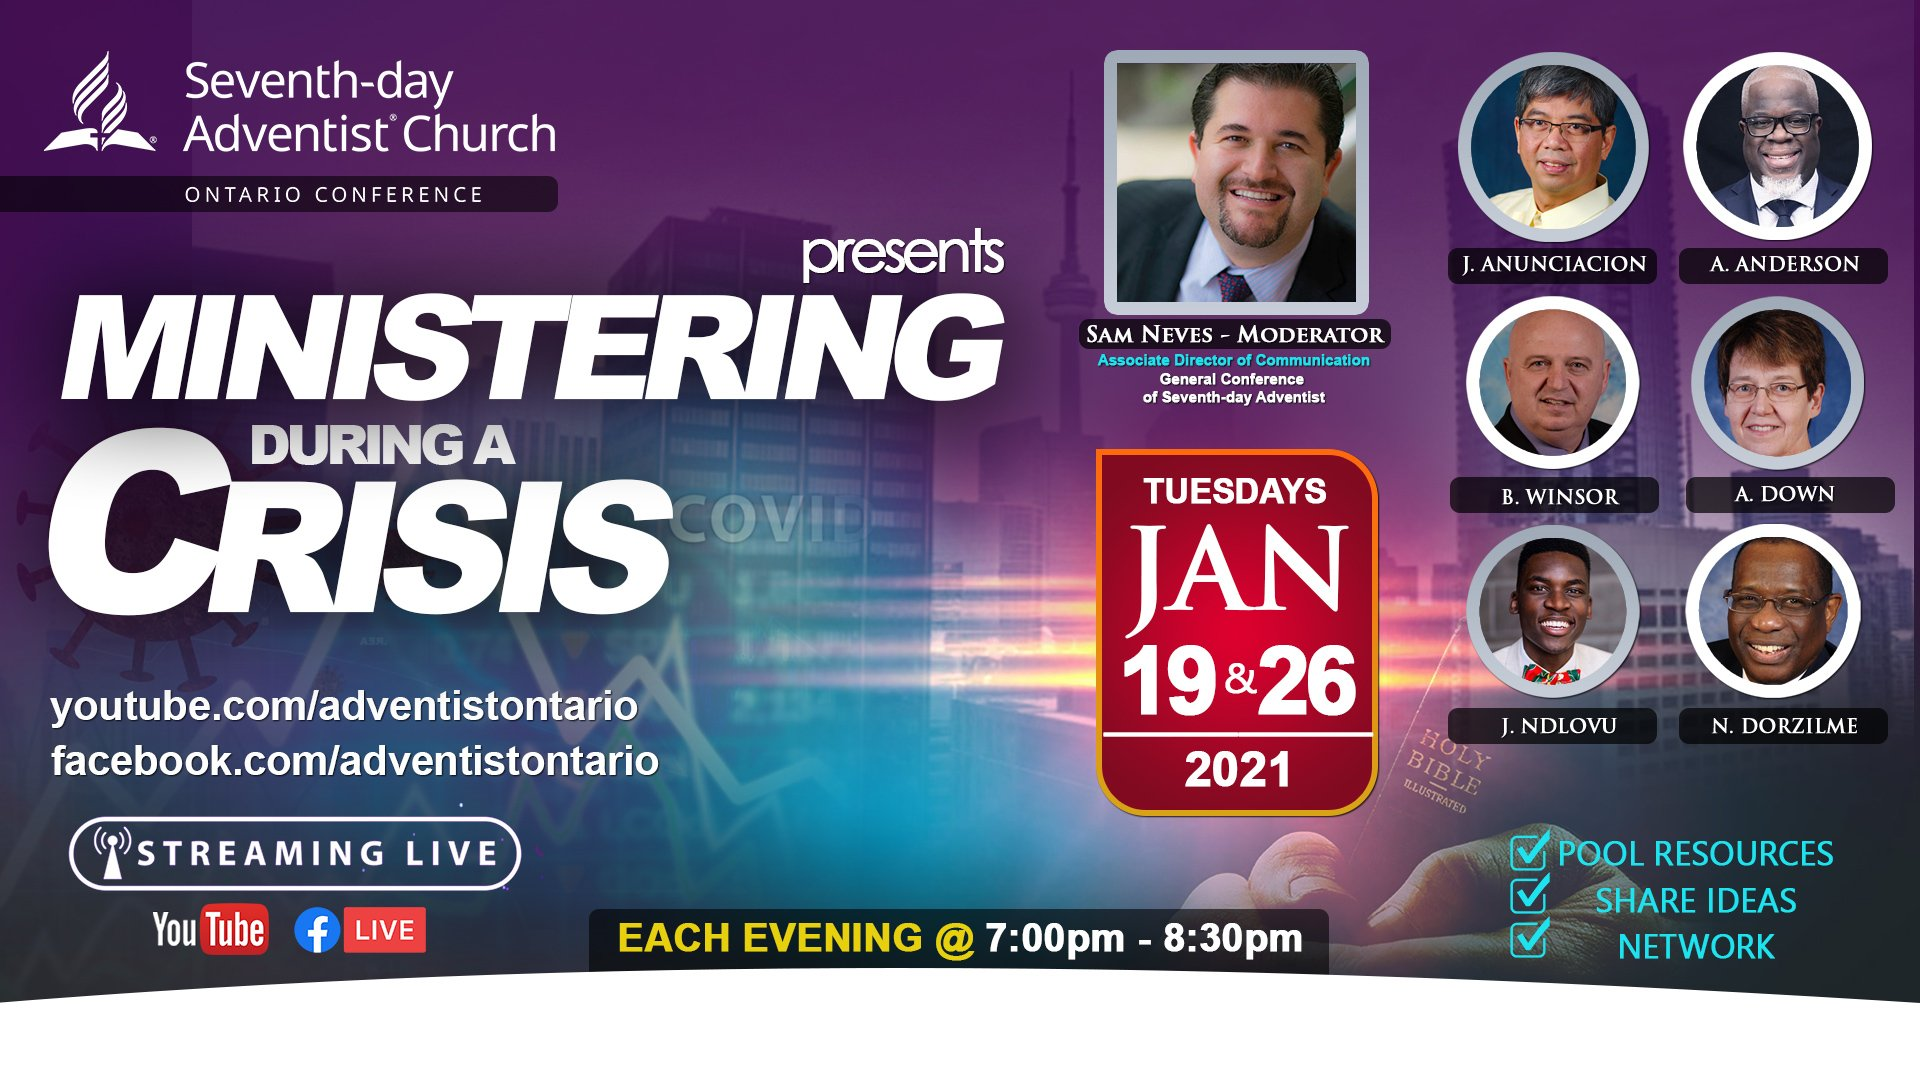 Ministering-During-A-Crisis-Main